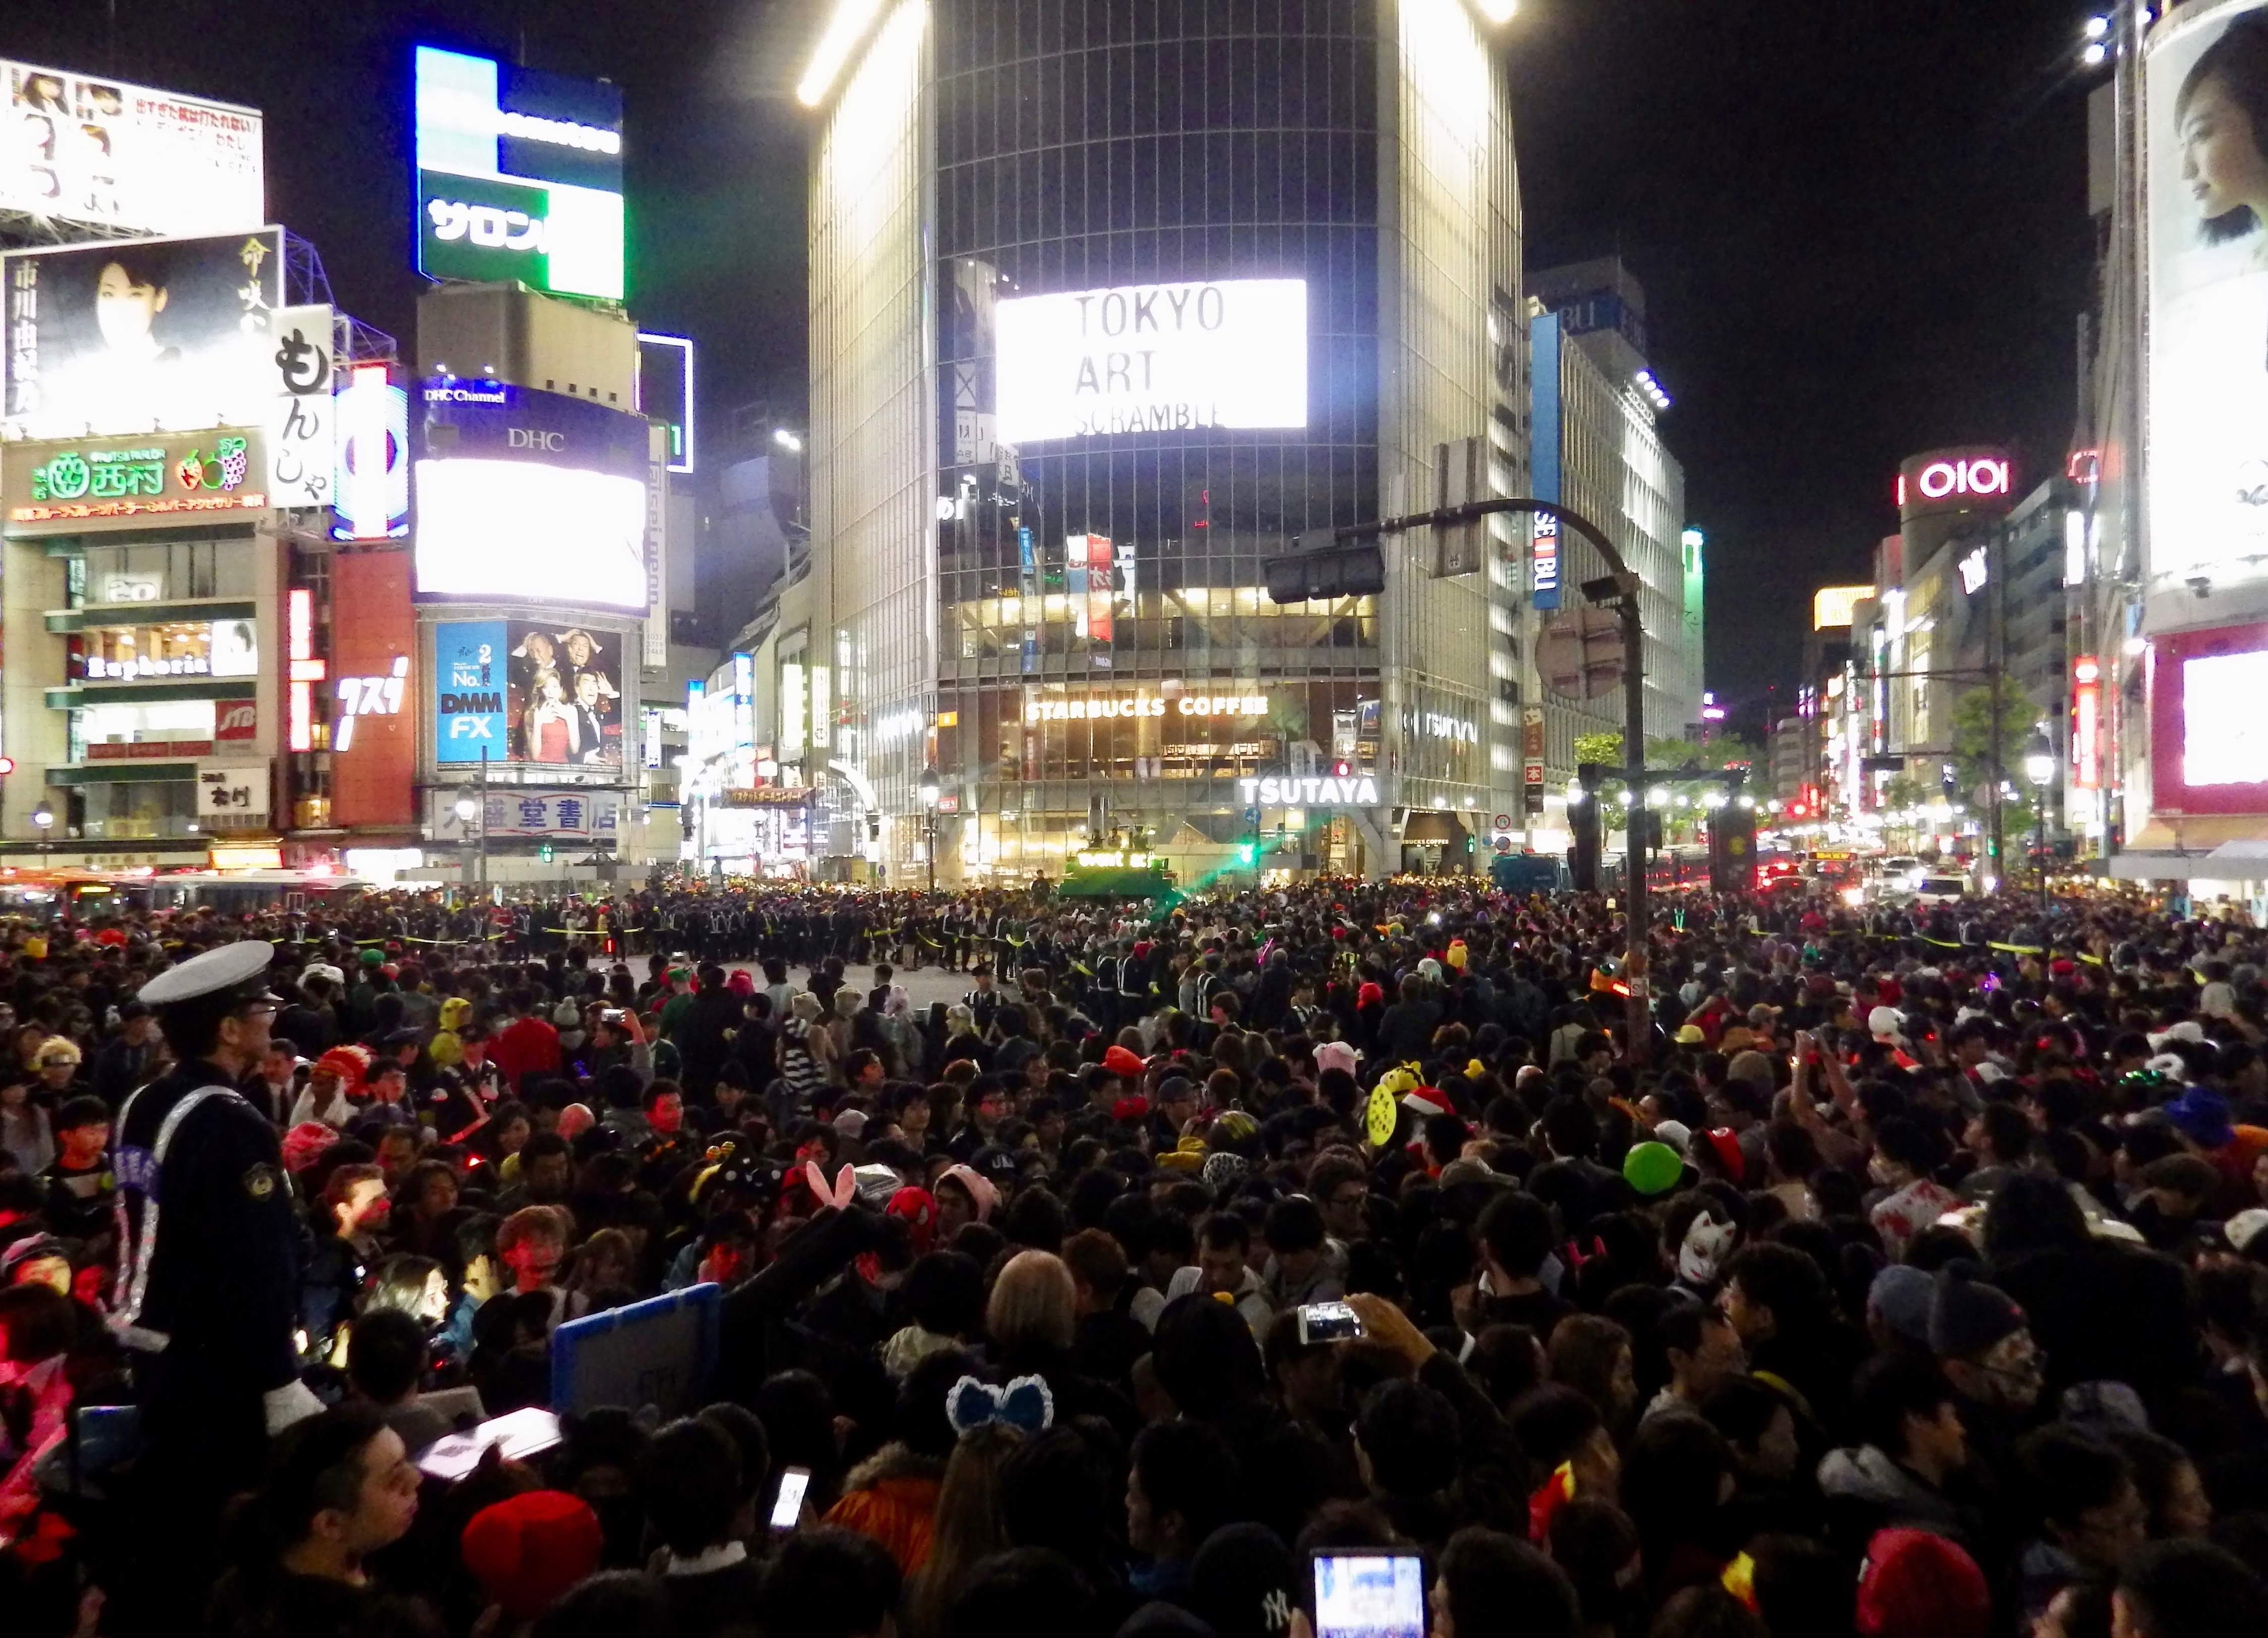 The Shibuya Scramble on Halloween night.